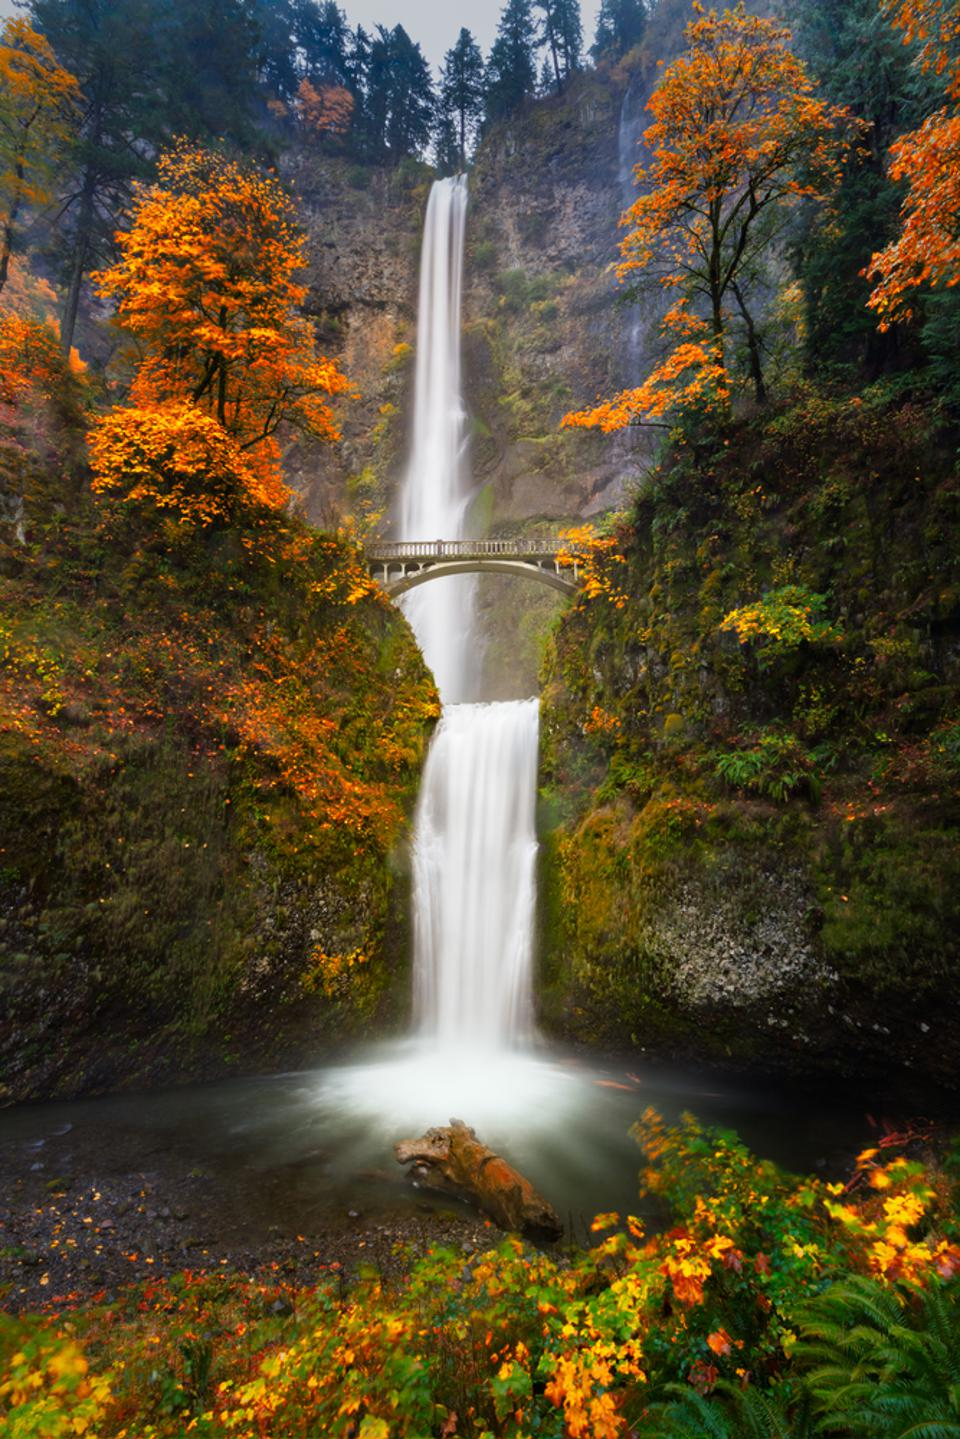 Oregon's Multnomah Falls outside of Portland are awe-inspiring. And quite photographable.